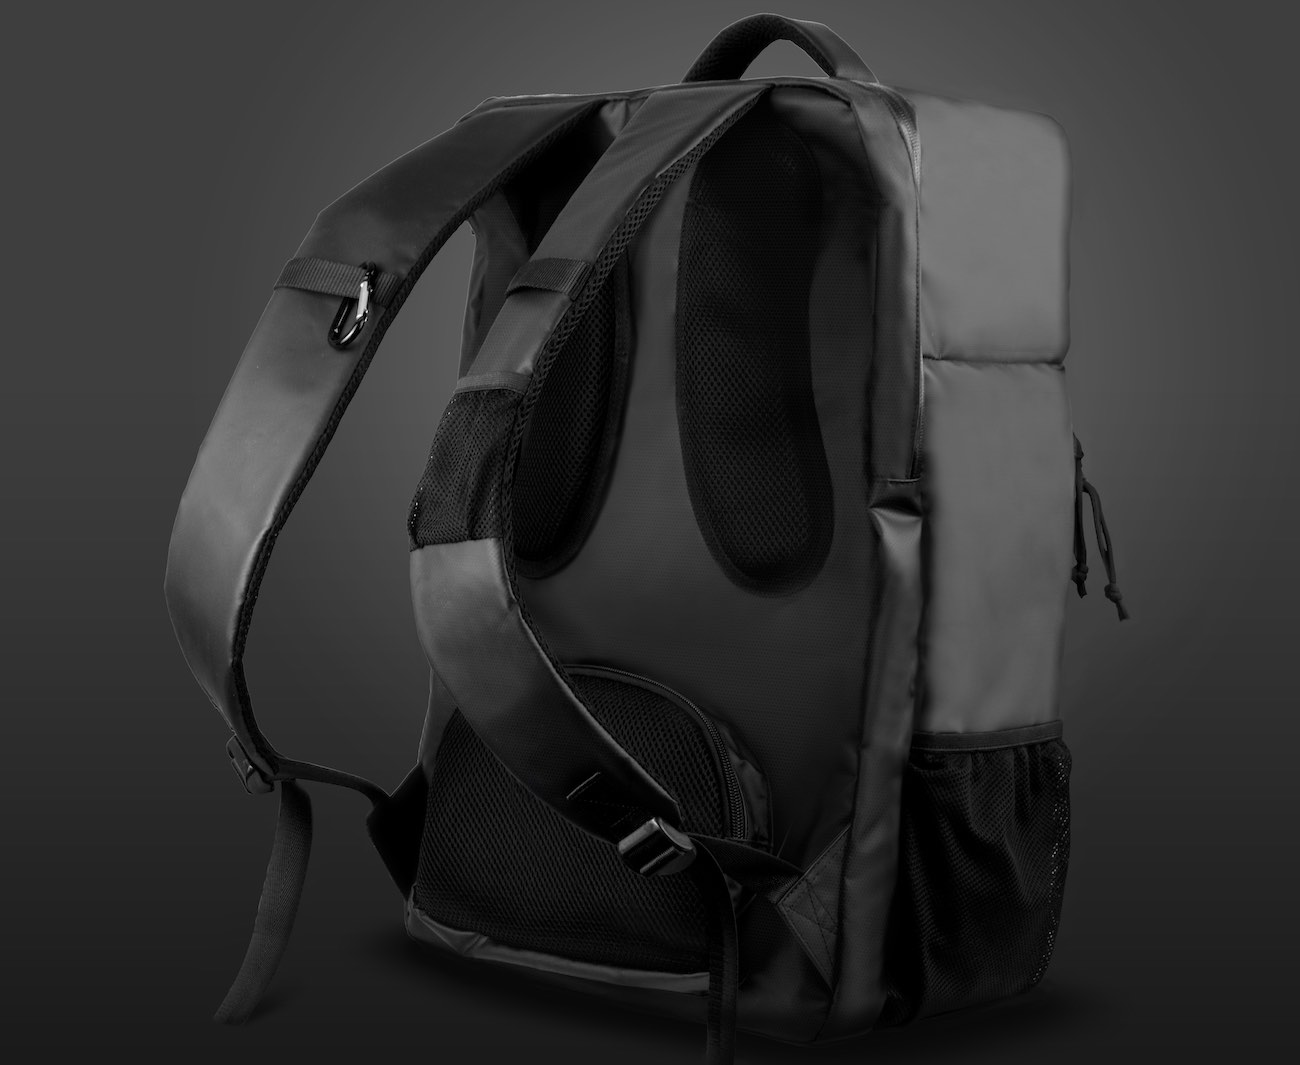 Best Backpack Ever Made - Crazy Backpacks